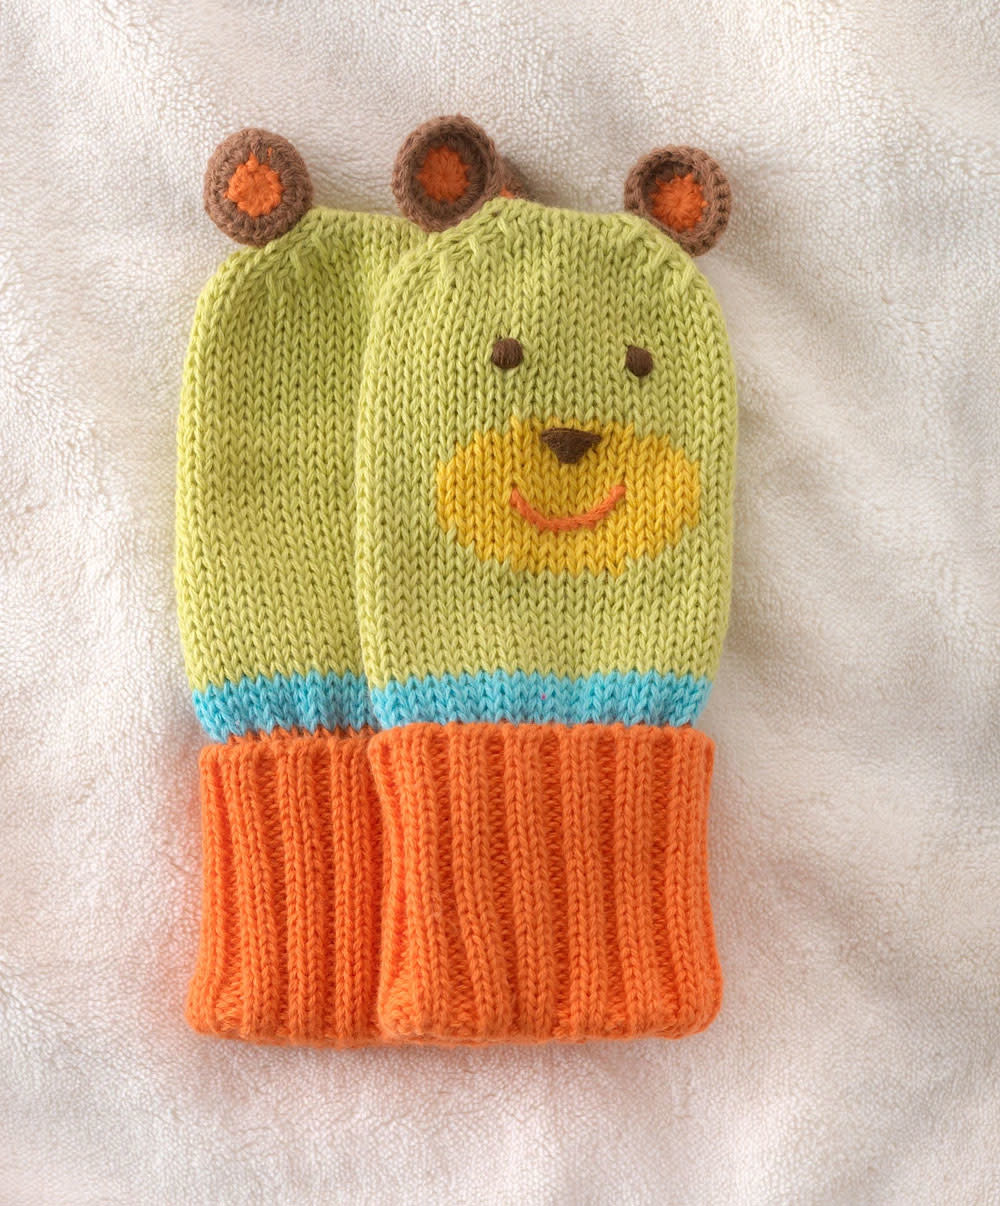 Green 3 Apparel Organic Cotton Knit Mittens